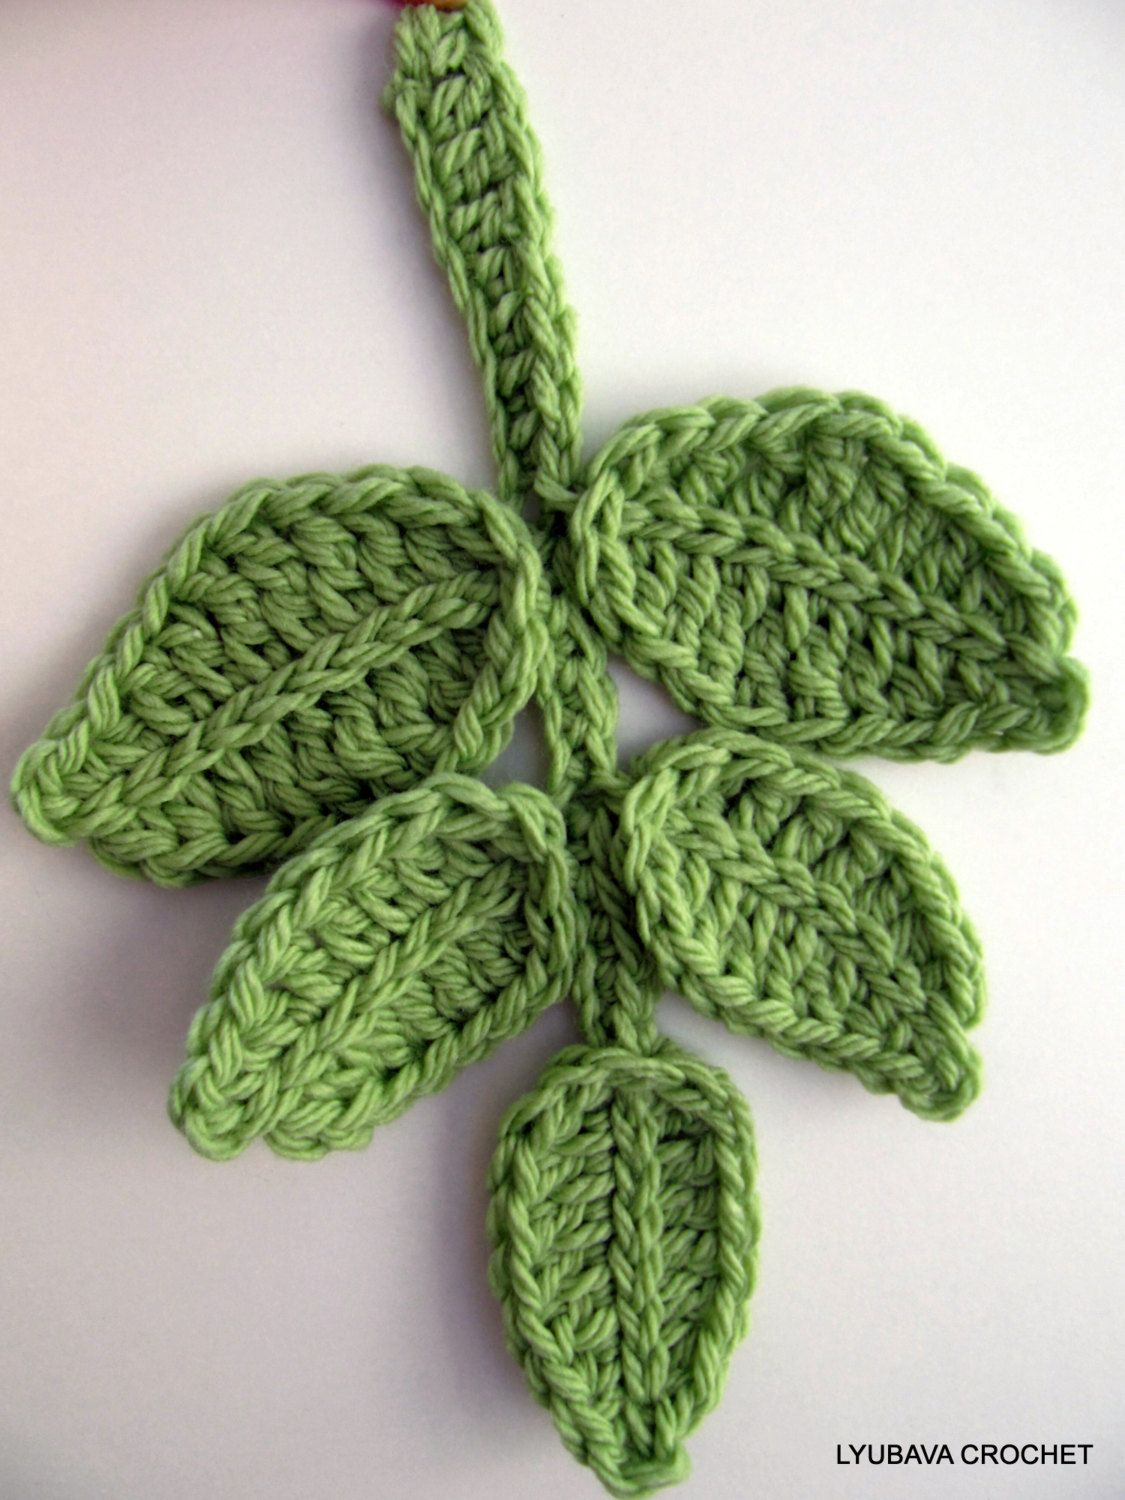 Free crochet leaf tutorial easy patterns crochet hooks and yarns tutorial pattern crochet applique branch of leaves chunky crochet green leaf pattern unique crochet bankloansurffo Image collections